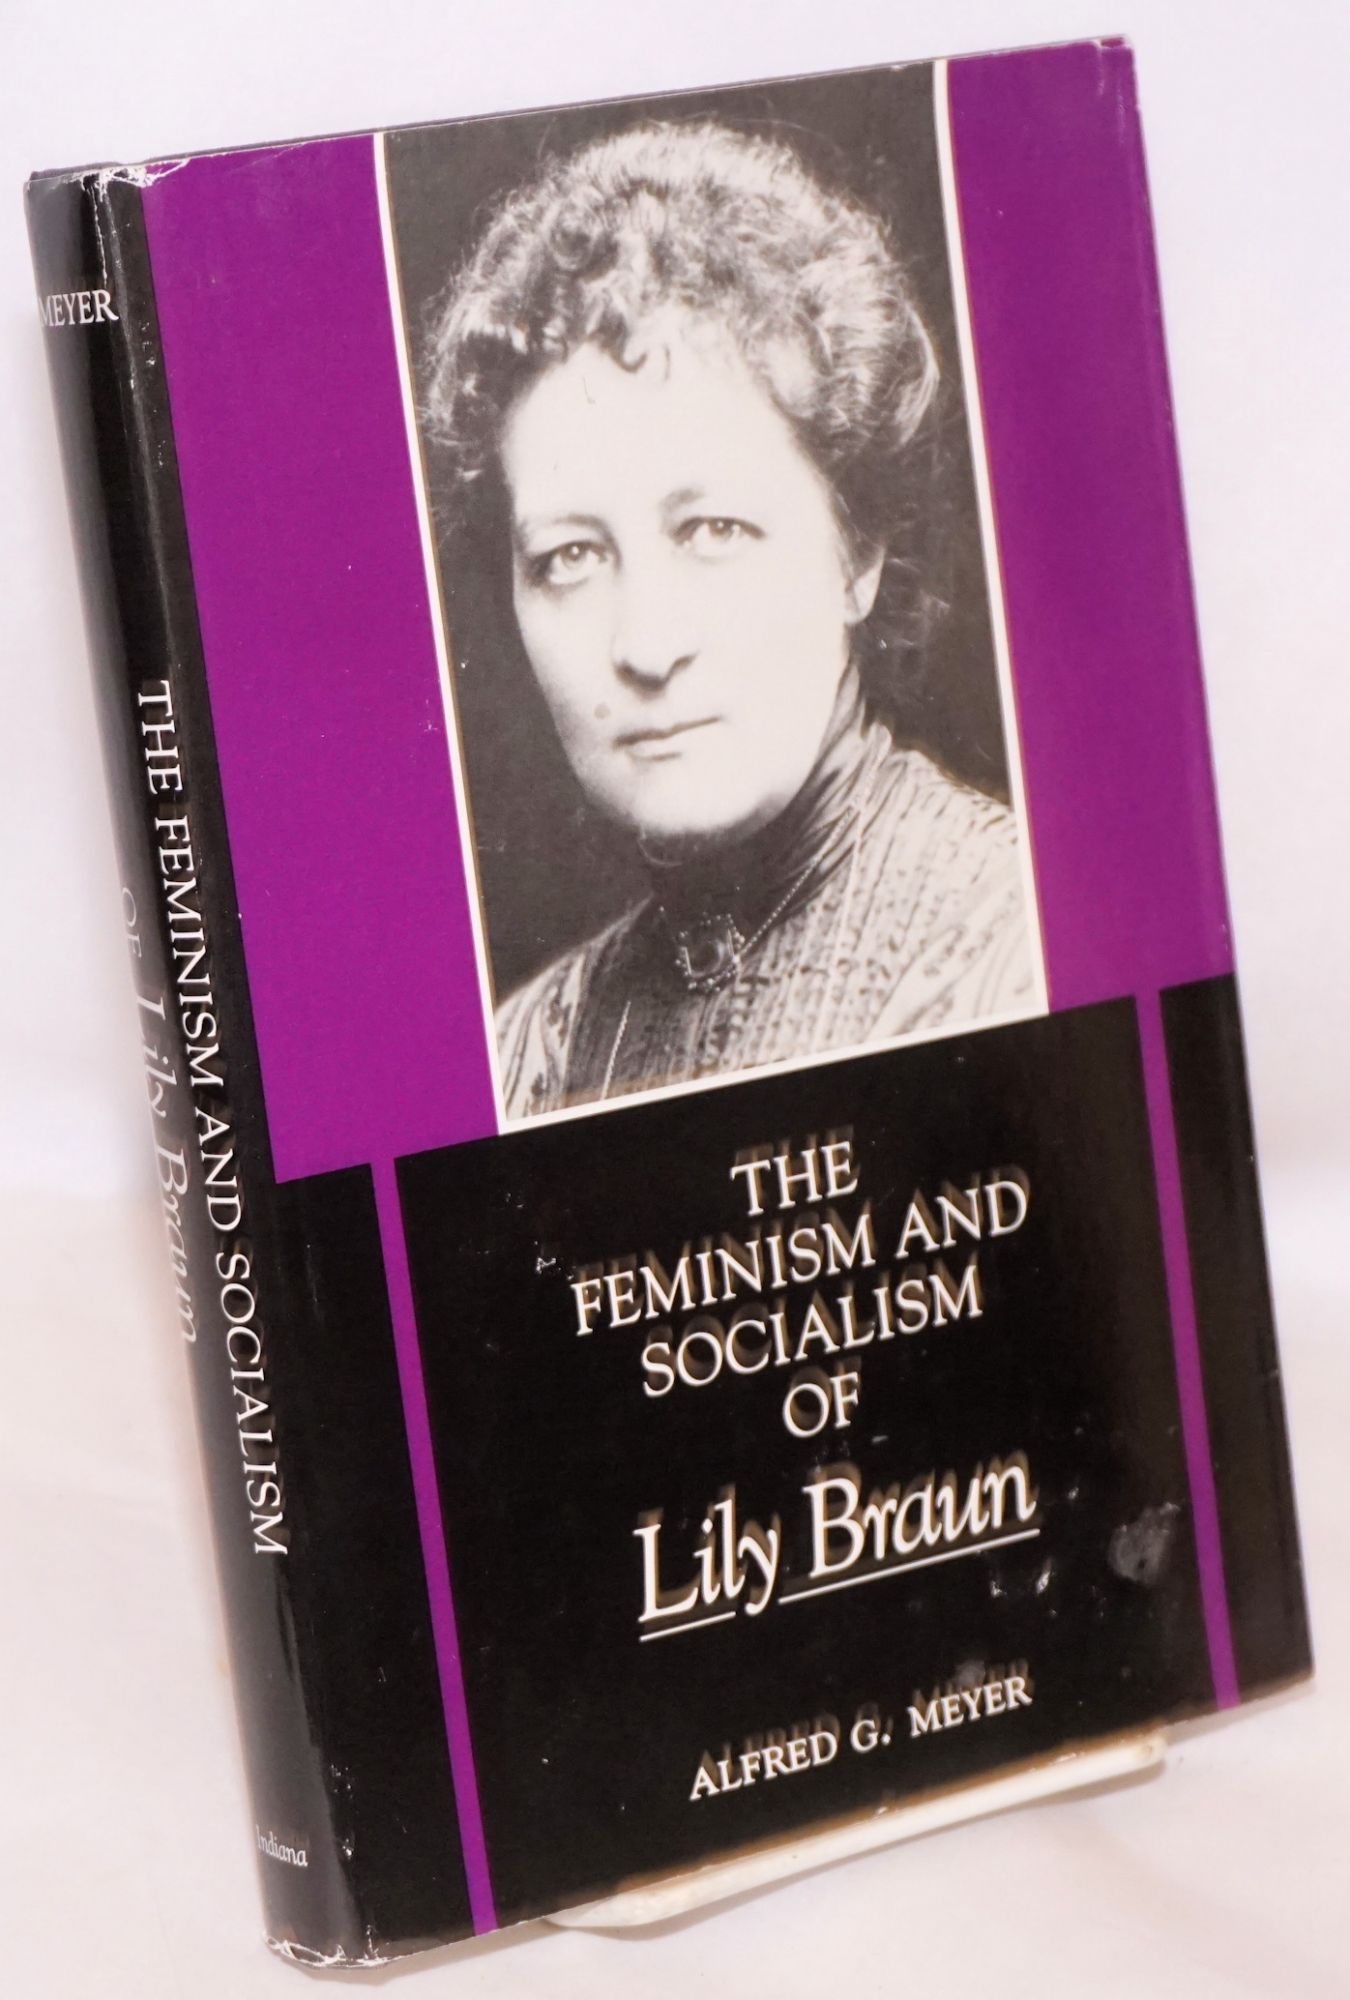 The feminism and socialism of Lily Braun - Meyer, Alfred G.